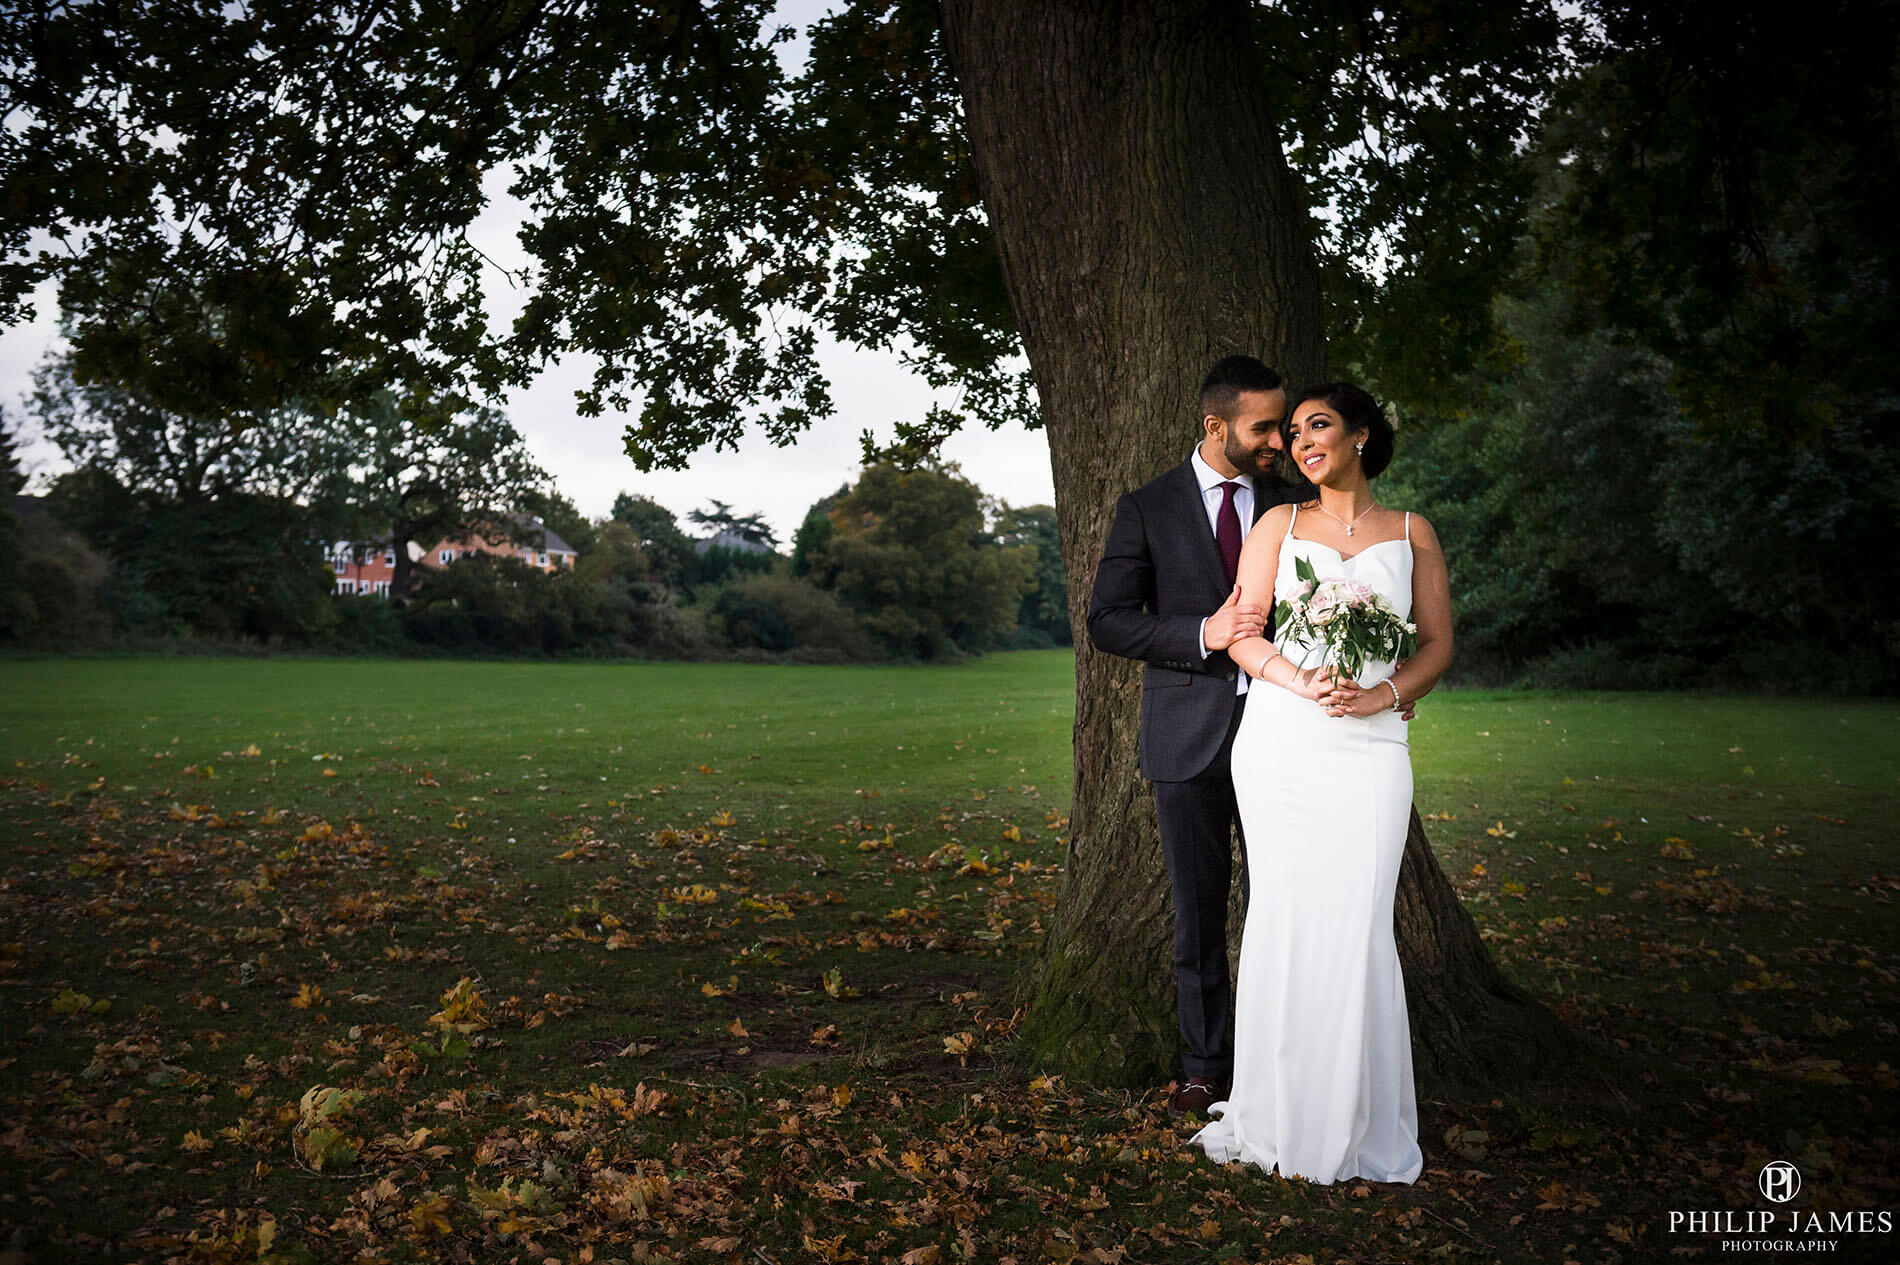 wedding photographer in sutton park | Philip James Photography